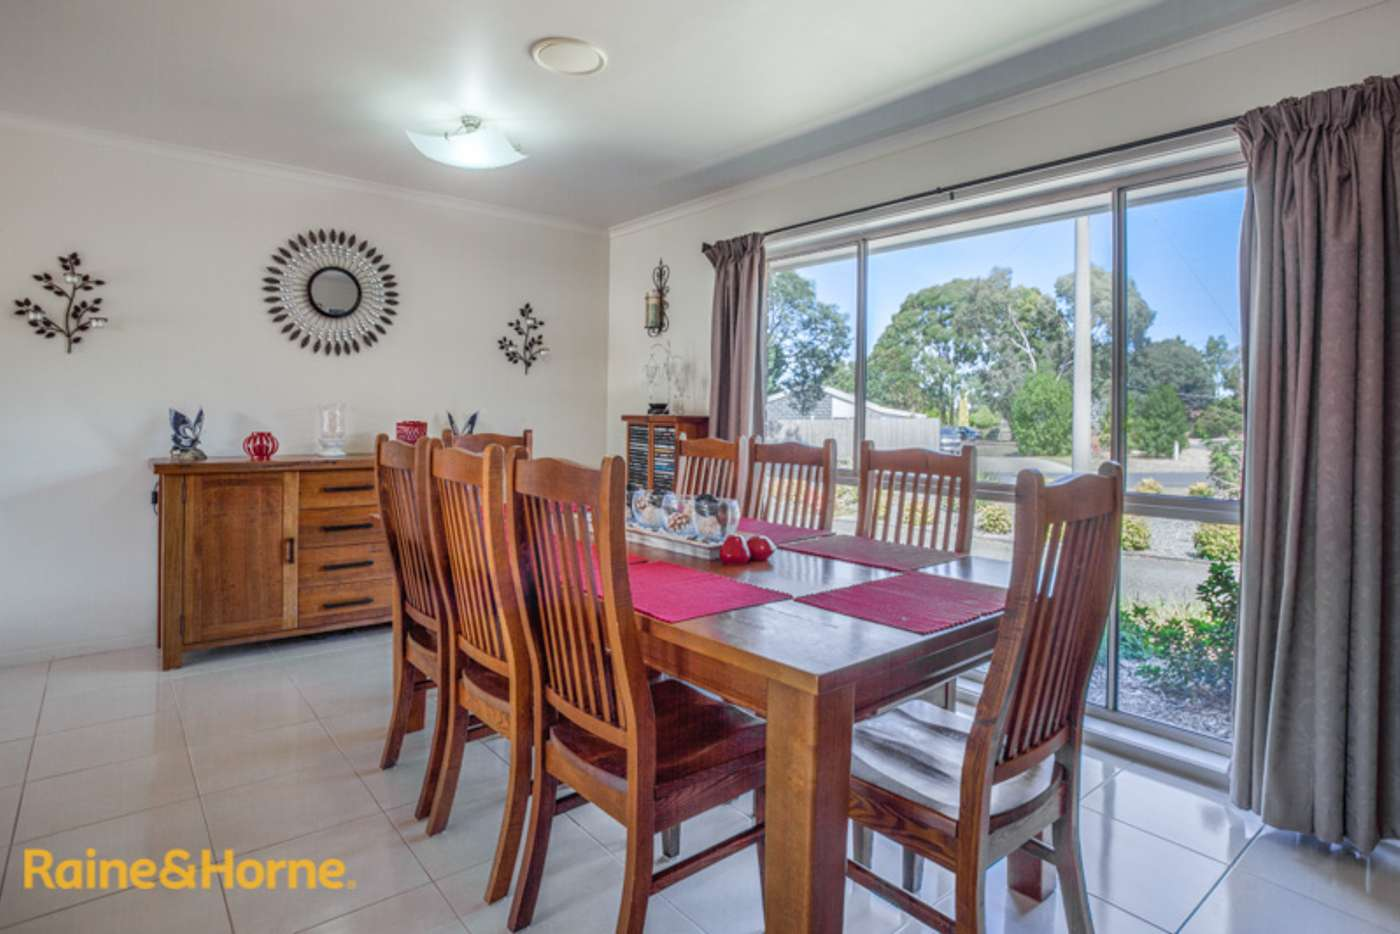 Fifth view of Homely house listing, 28 Regan Drive, Romsey VIC 3434